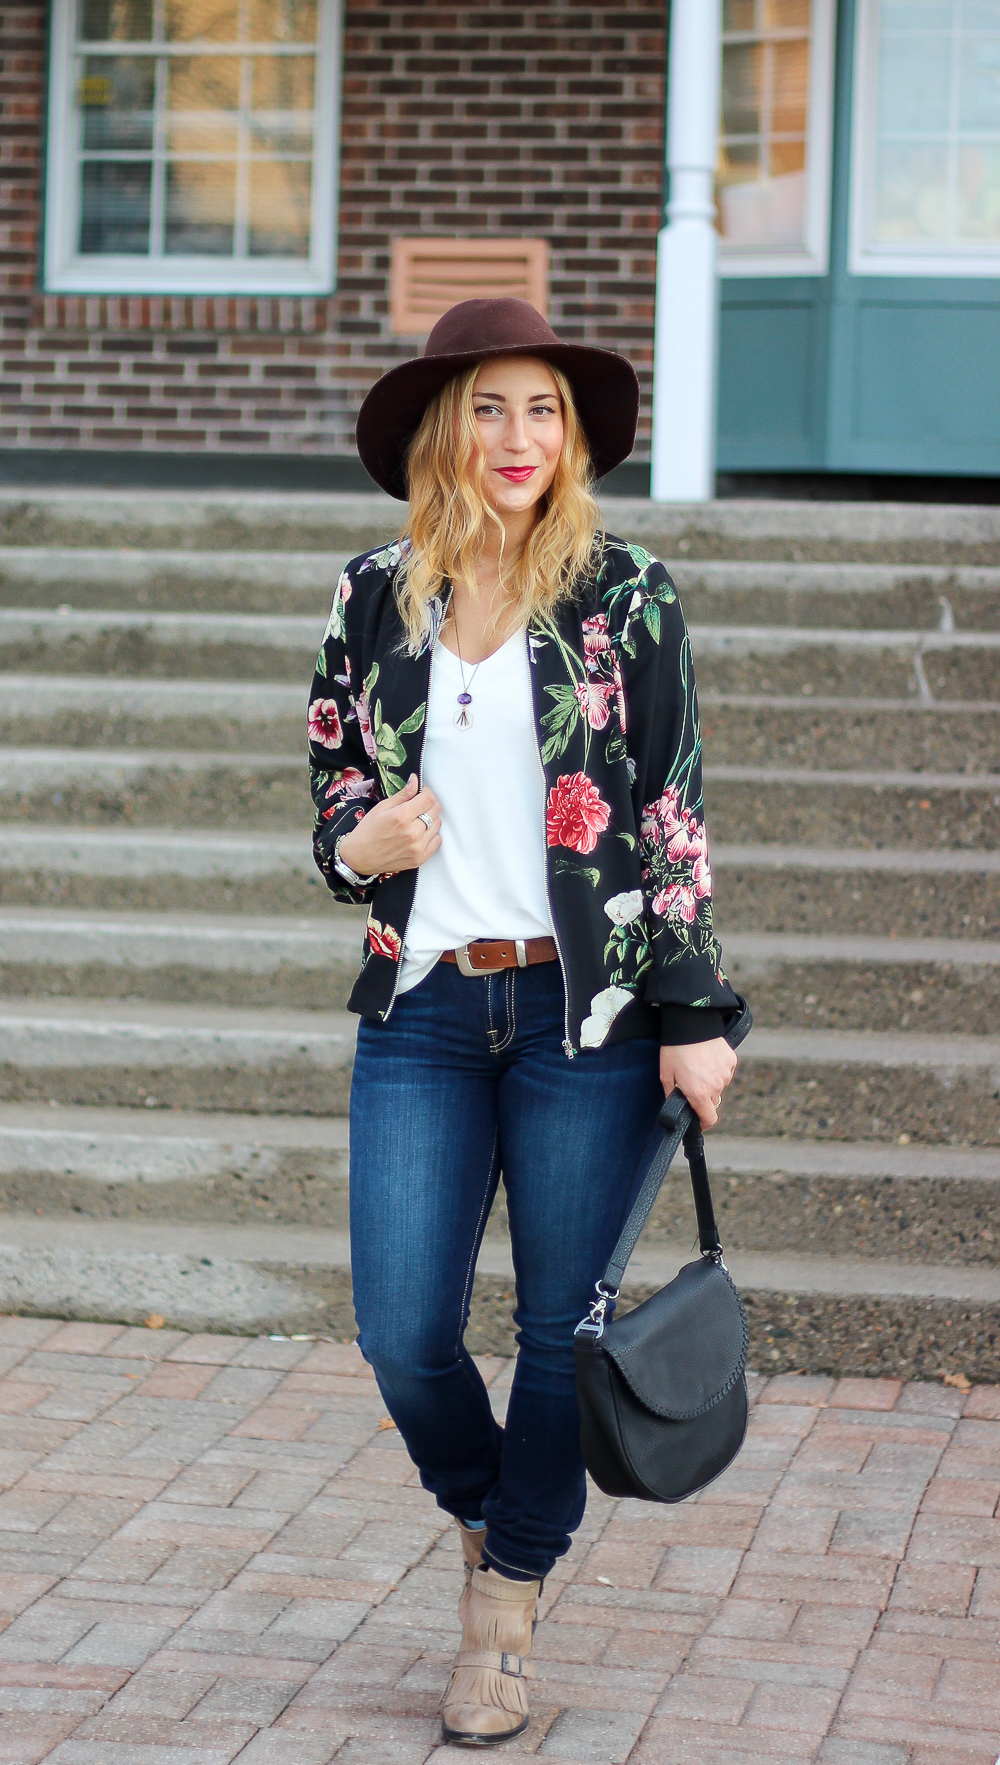 Canadian fashion and lifestyle blogger, Jackie Goldhar from Something About That, wearing a floral bomber jacket and Guess jeans from Jean Machine